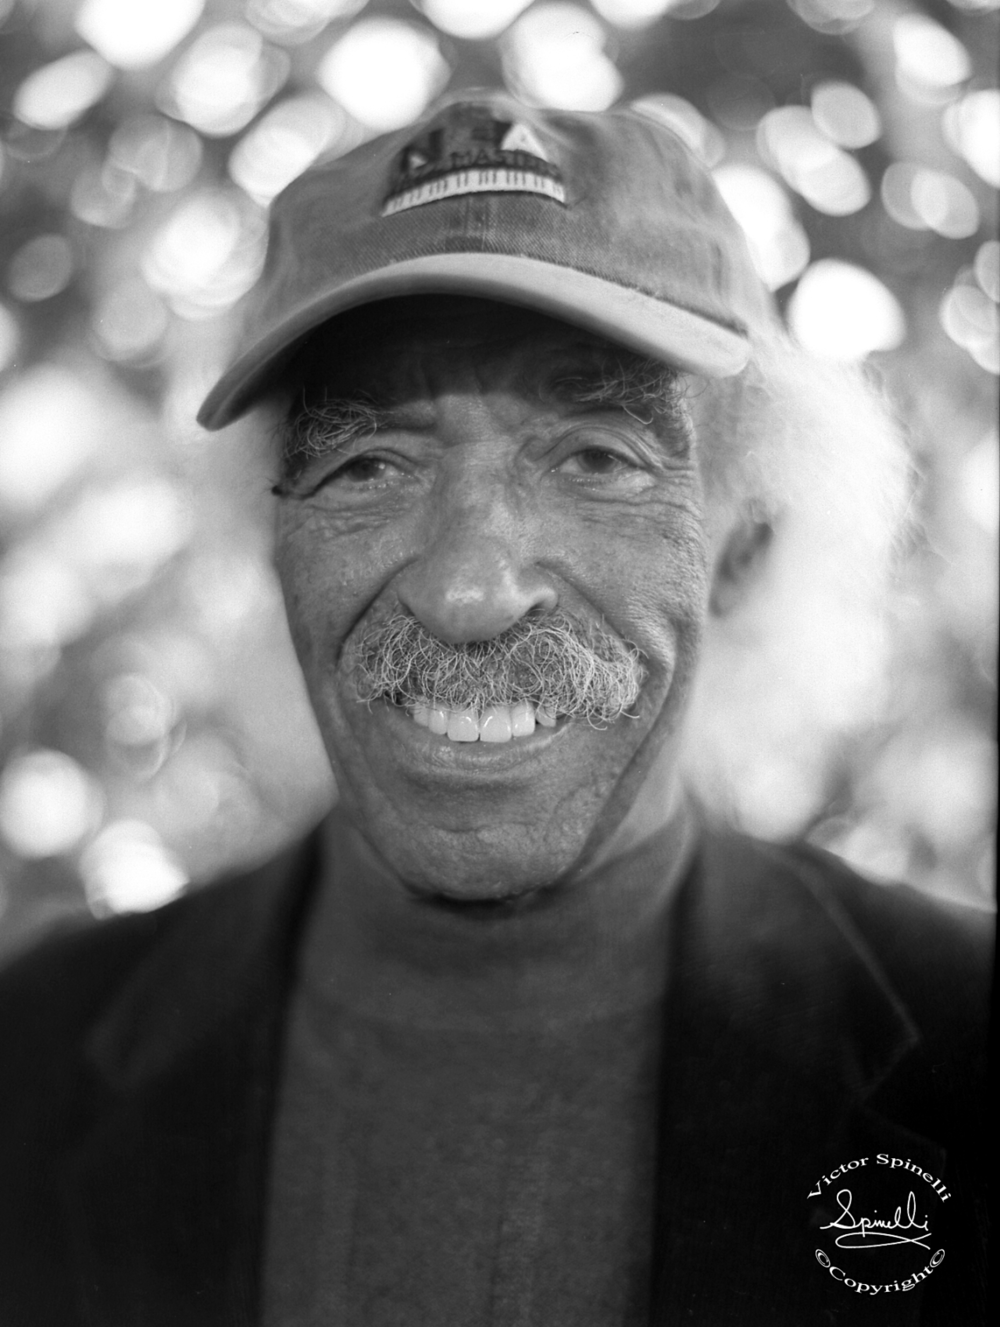 R.I.P. Gerald Wilson, world renowned Jazz Arranger and Trumpeter. He past away on September 8, 2014 at the age of 96. I was fortunate to take this portrait of his, in Beverly Hills,  a few years back. He wrote arrangements for many great musicians including Duke Ellington, Dizzy Gillespie and Ray Charles to name just a few. God bless his soul…. photo: Victor Spinelli Archive.